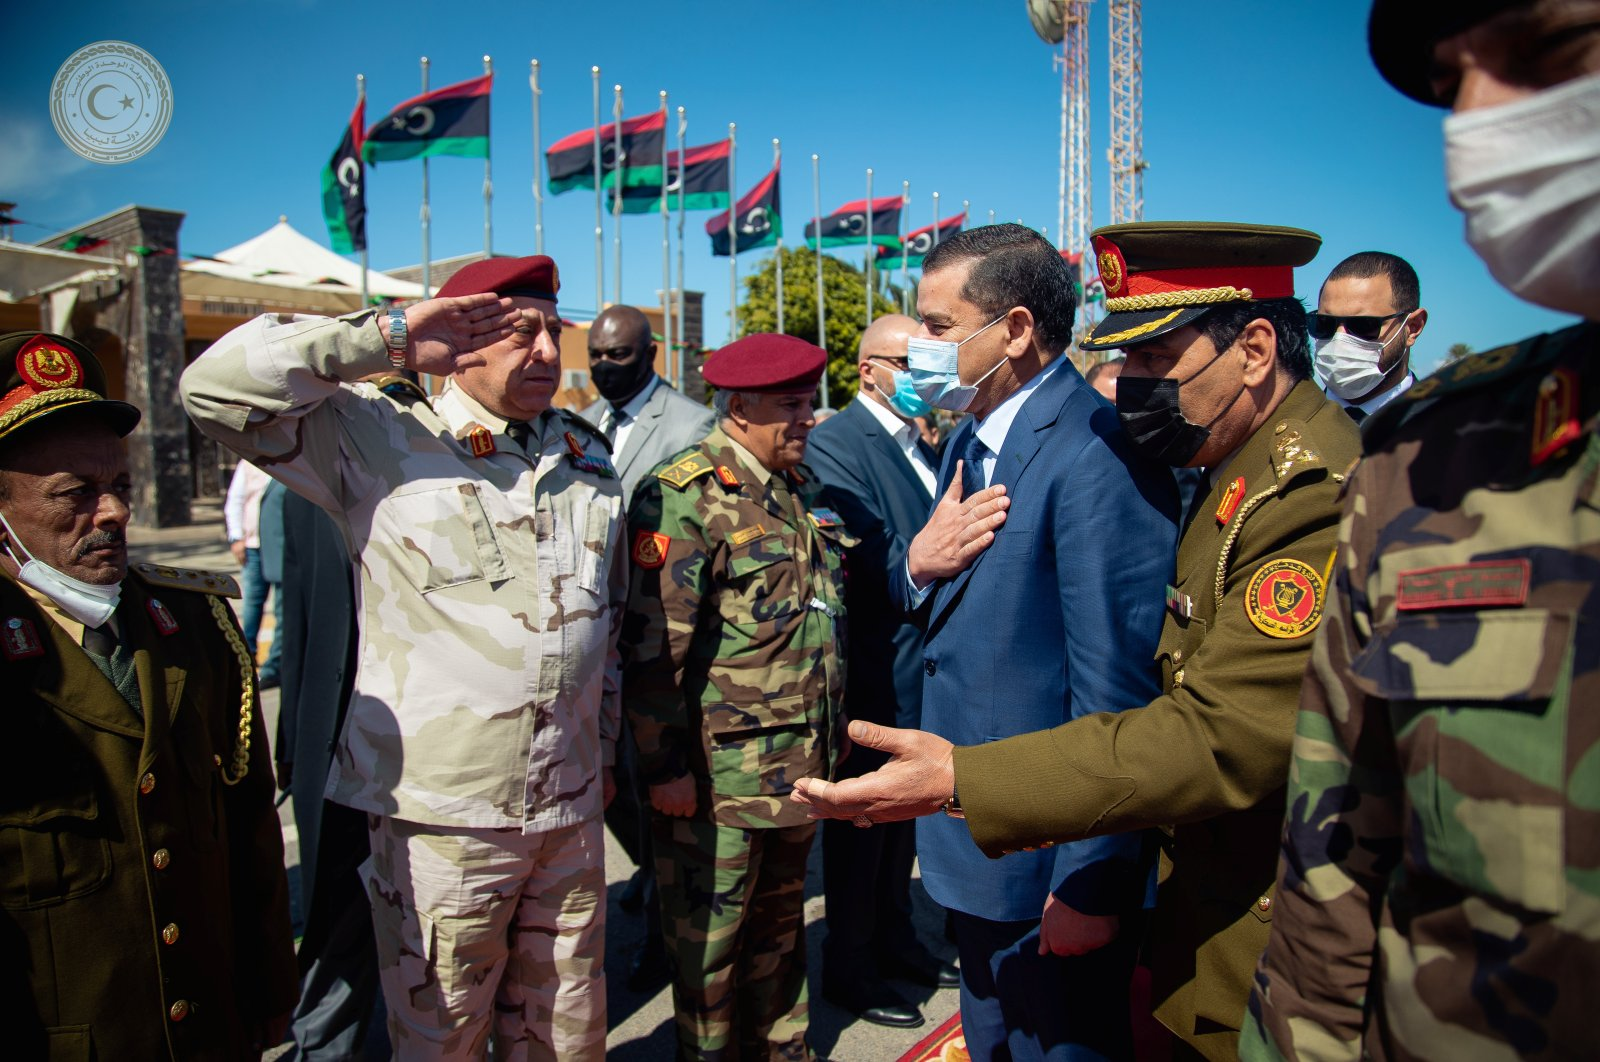 Libya's Prime Minister Abdul Hamid Dbeibeh is welcomed upon his arrival in Tripoli, Libya, March 11, 2021.  (REUTERS)